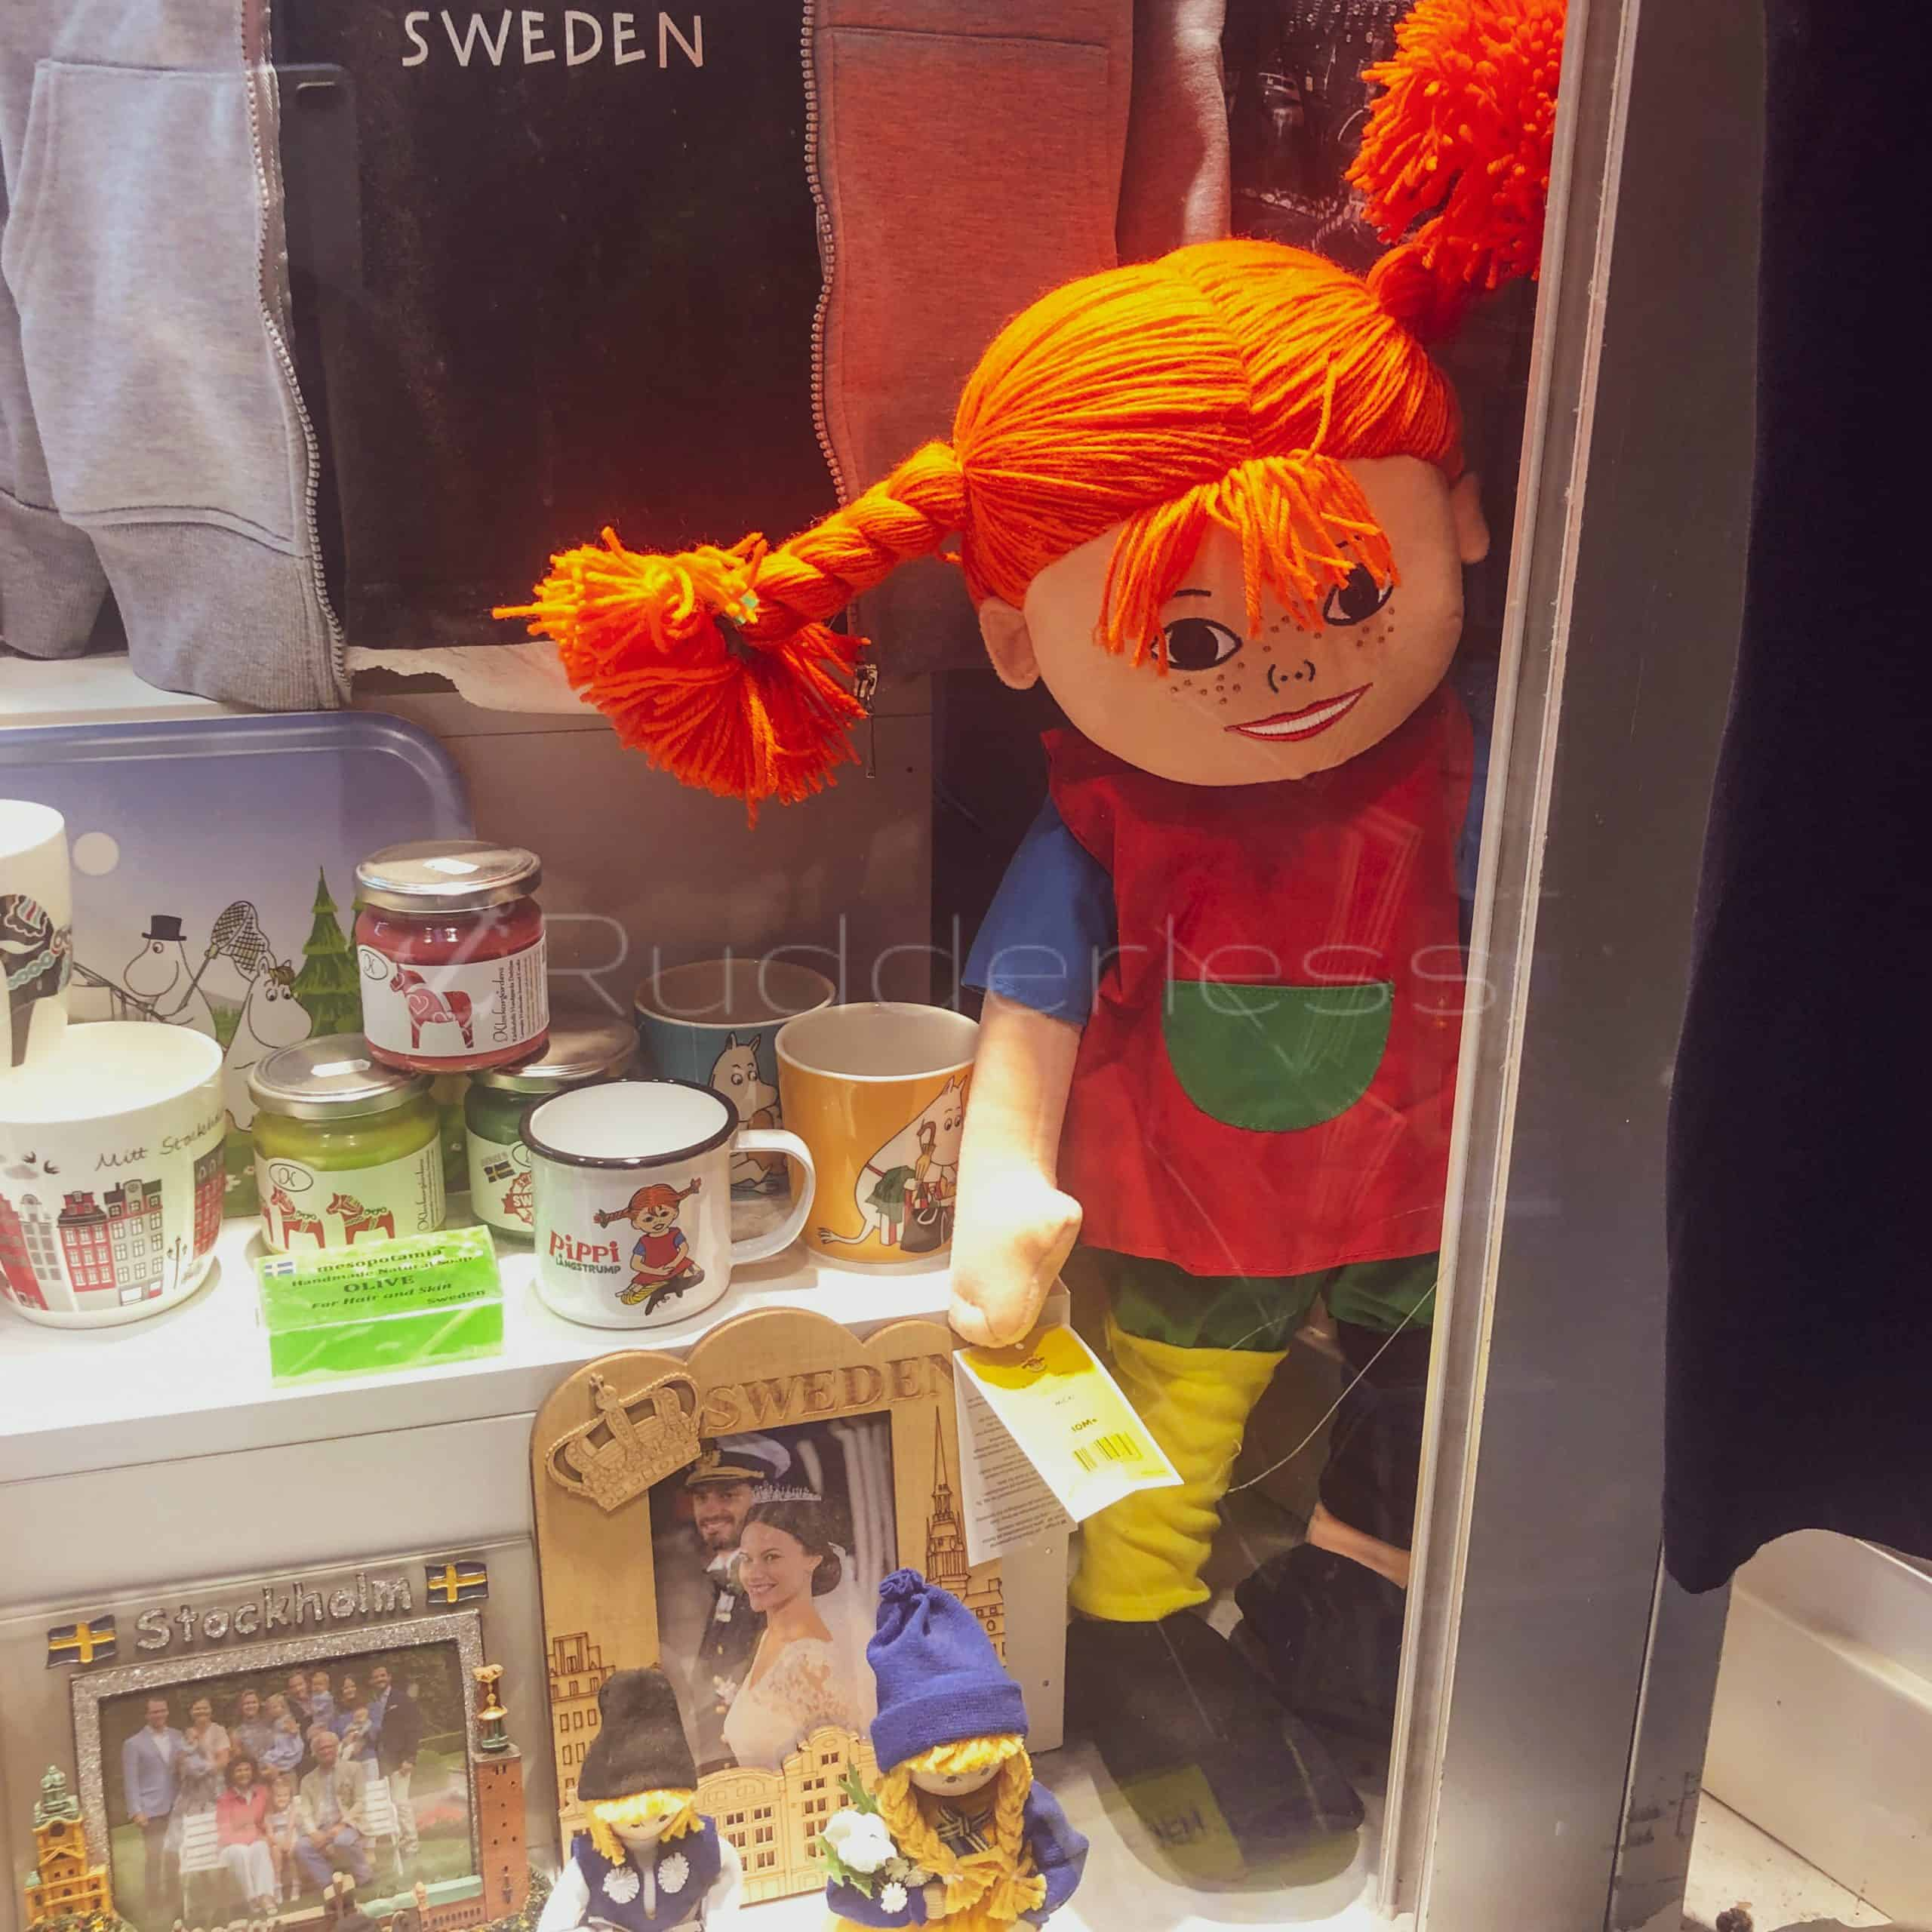 pippi longstocking's stockholm itinerary